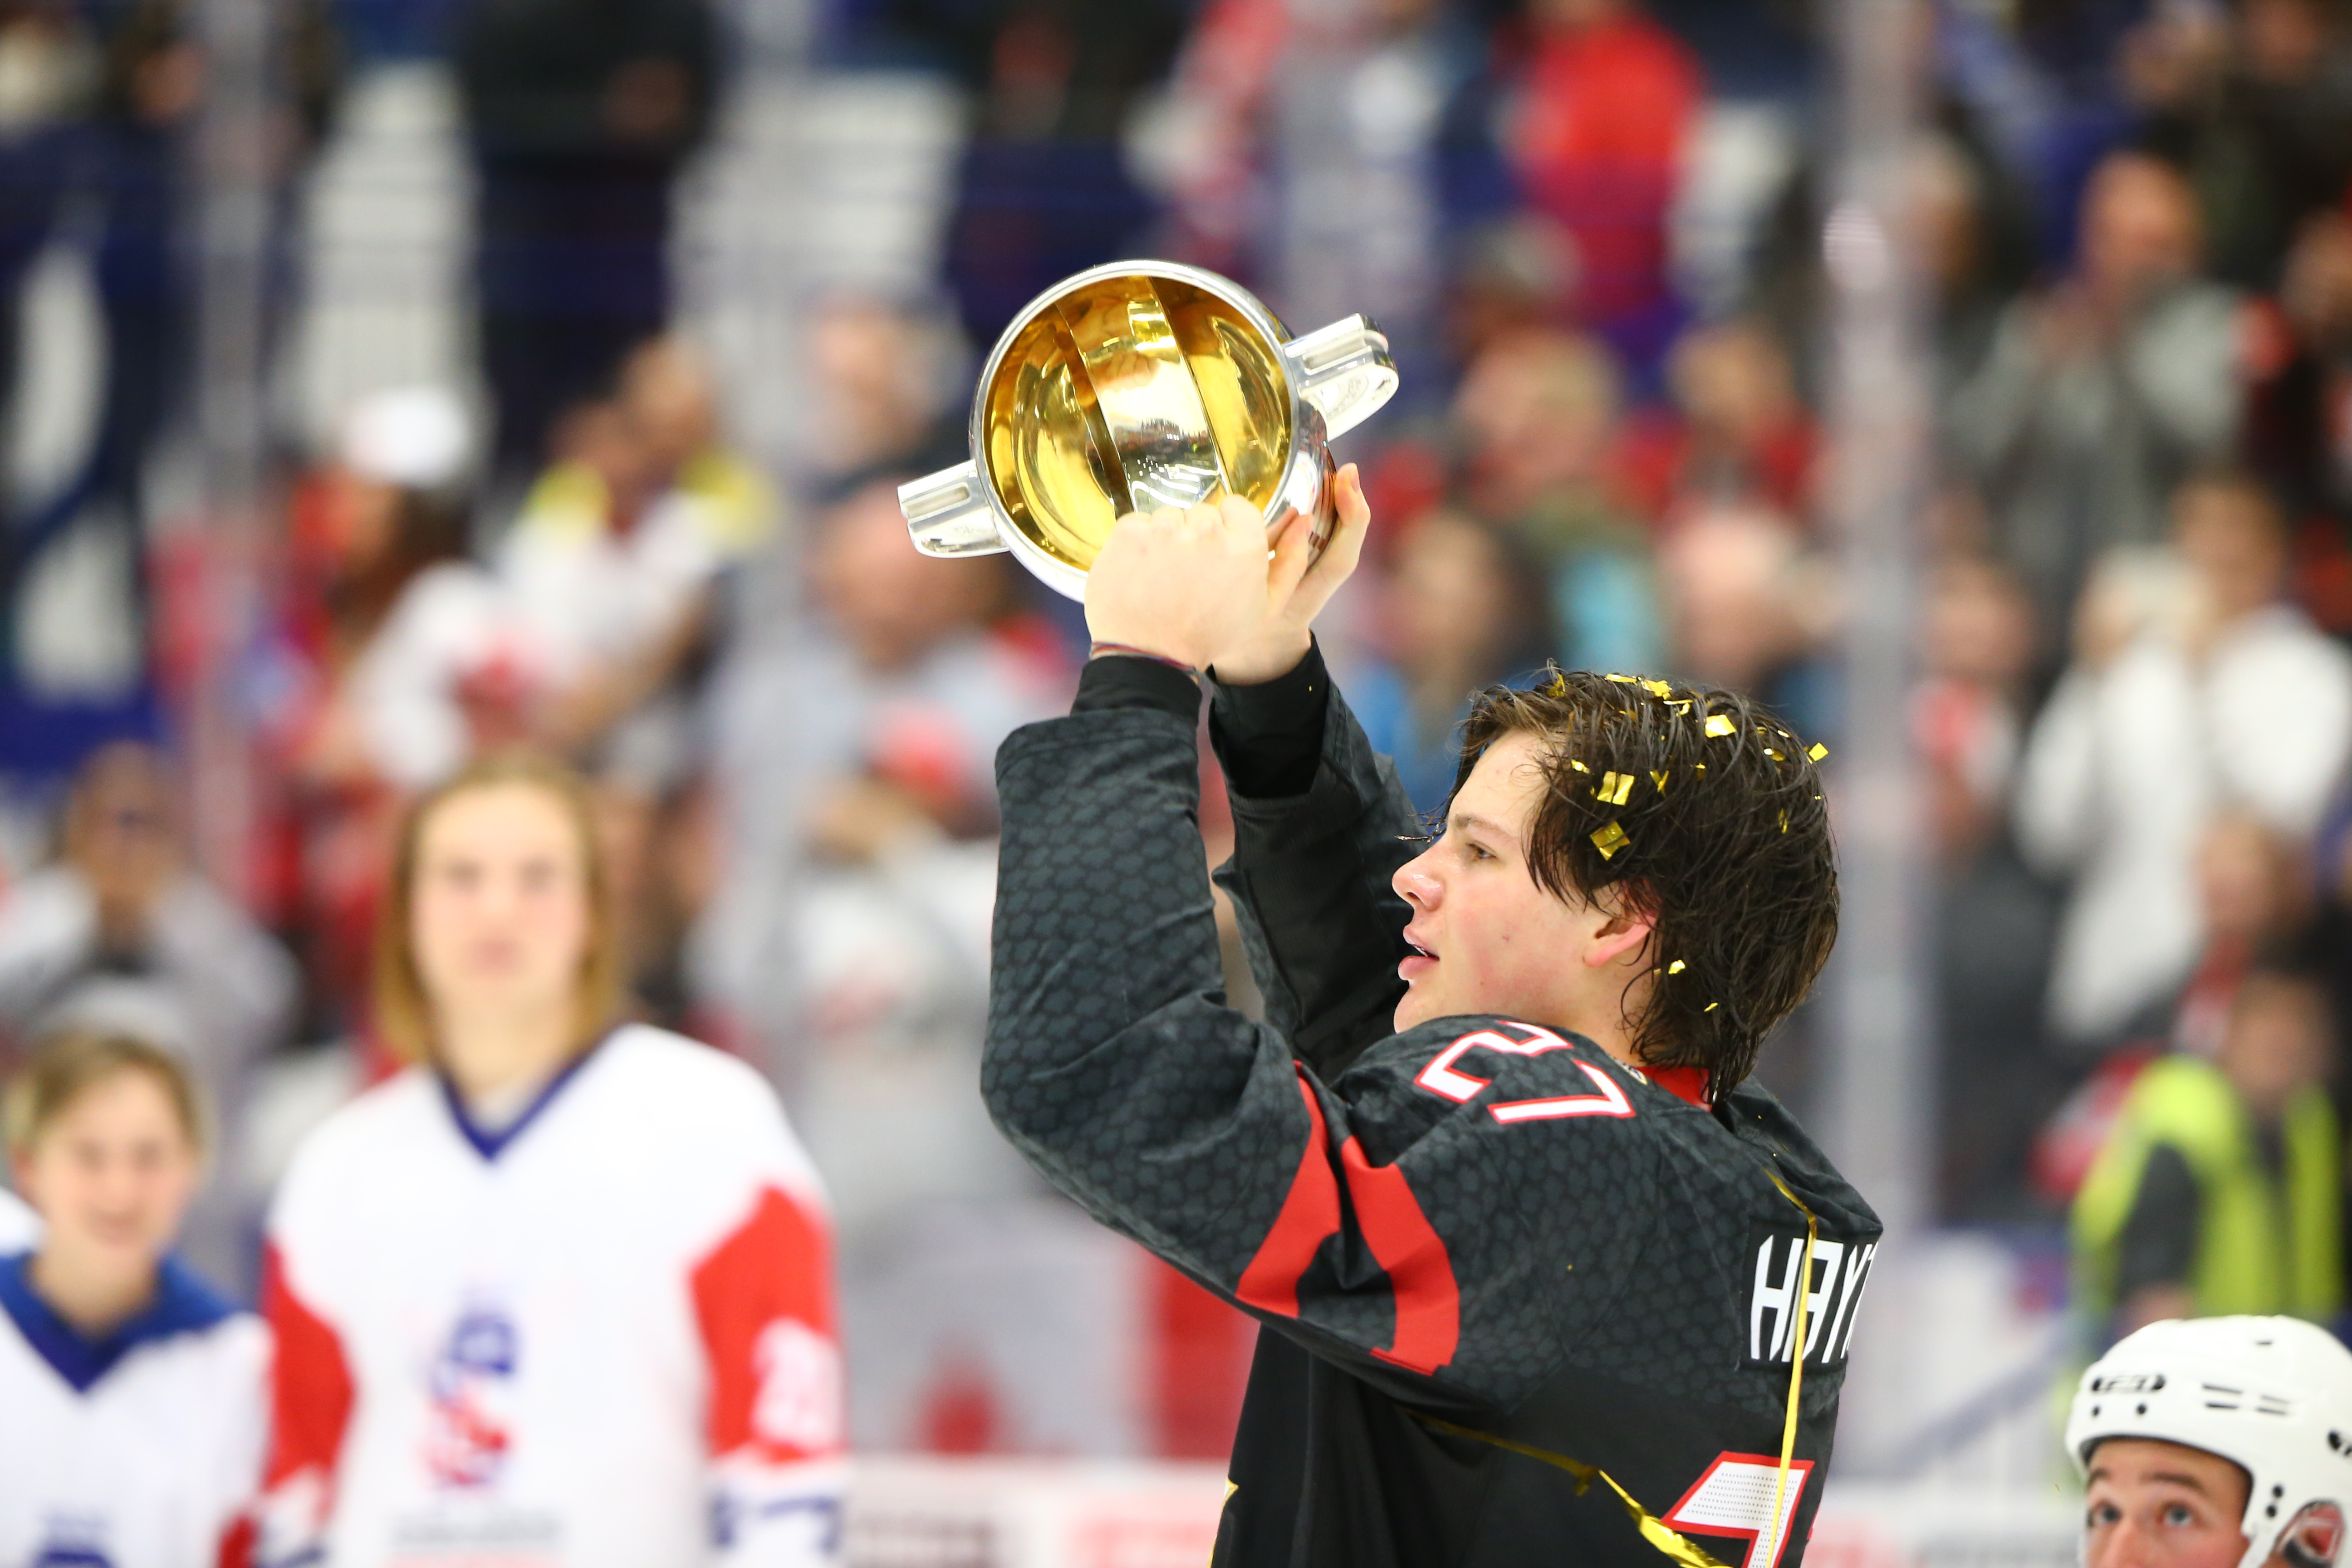 Canada's captain Barrett Hayton celebrates with the trophy during the medal ceremony for the 2020 World Junior Ice Hockey Championship final match between Canada and Russia at Ostravar Arena; Canada won 4-3.